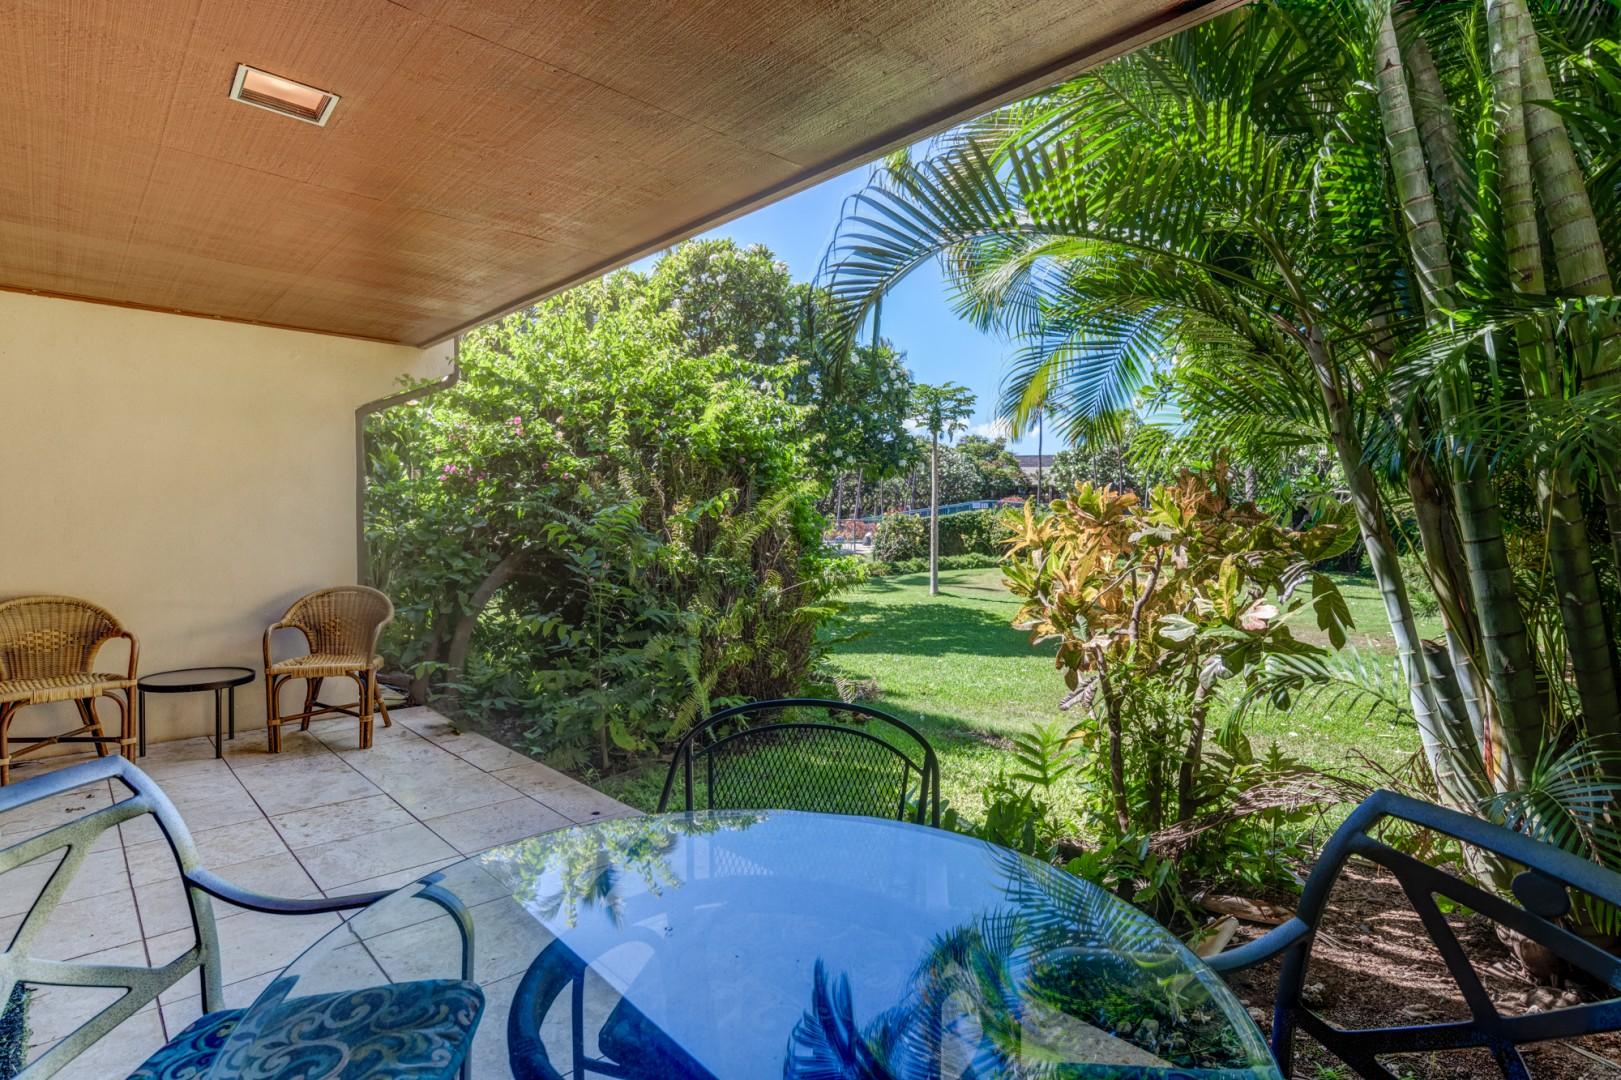 Lanai table & chairs to enjoy meals outside